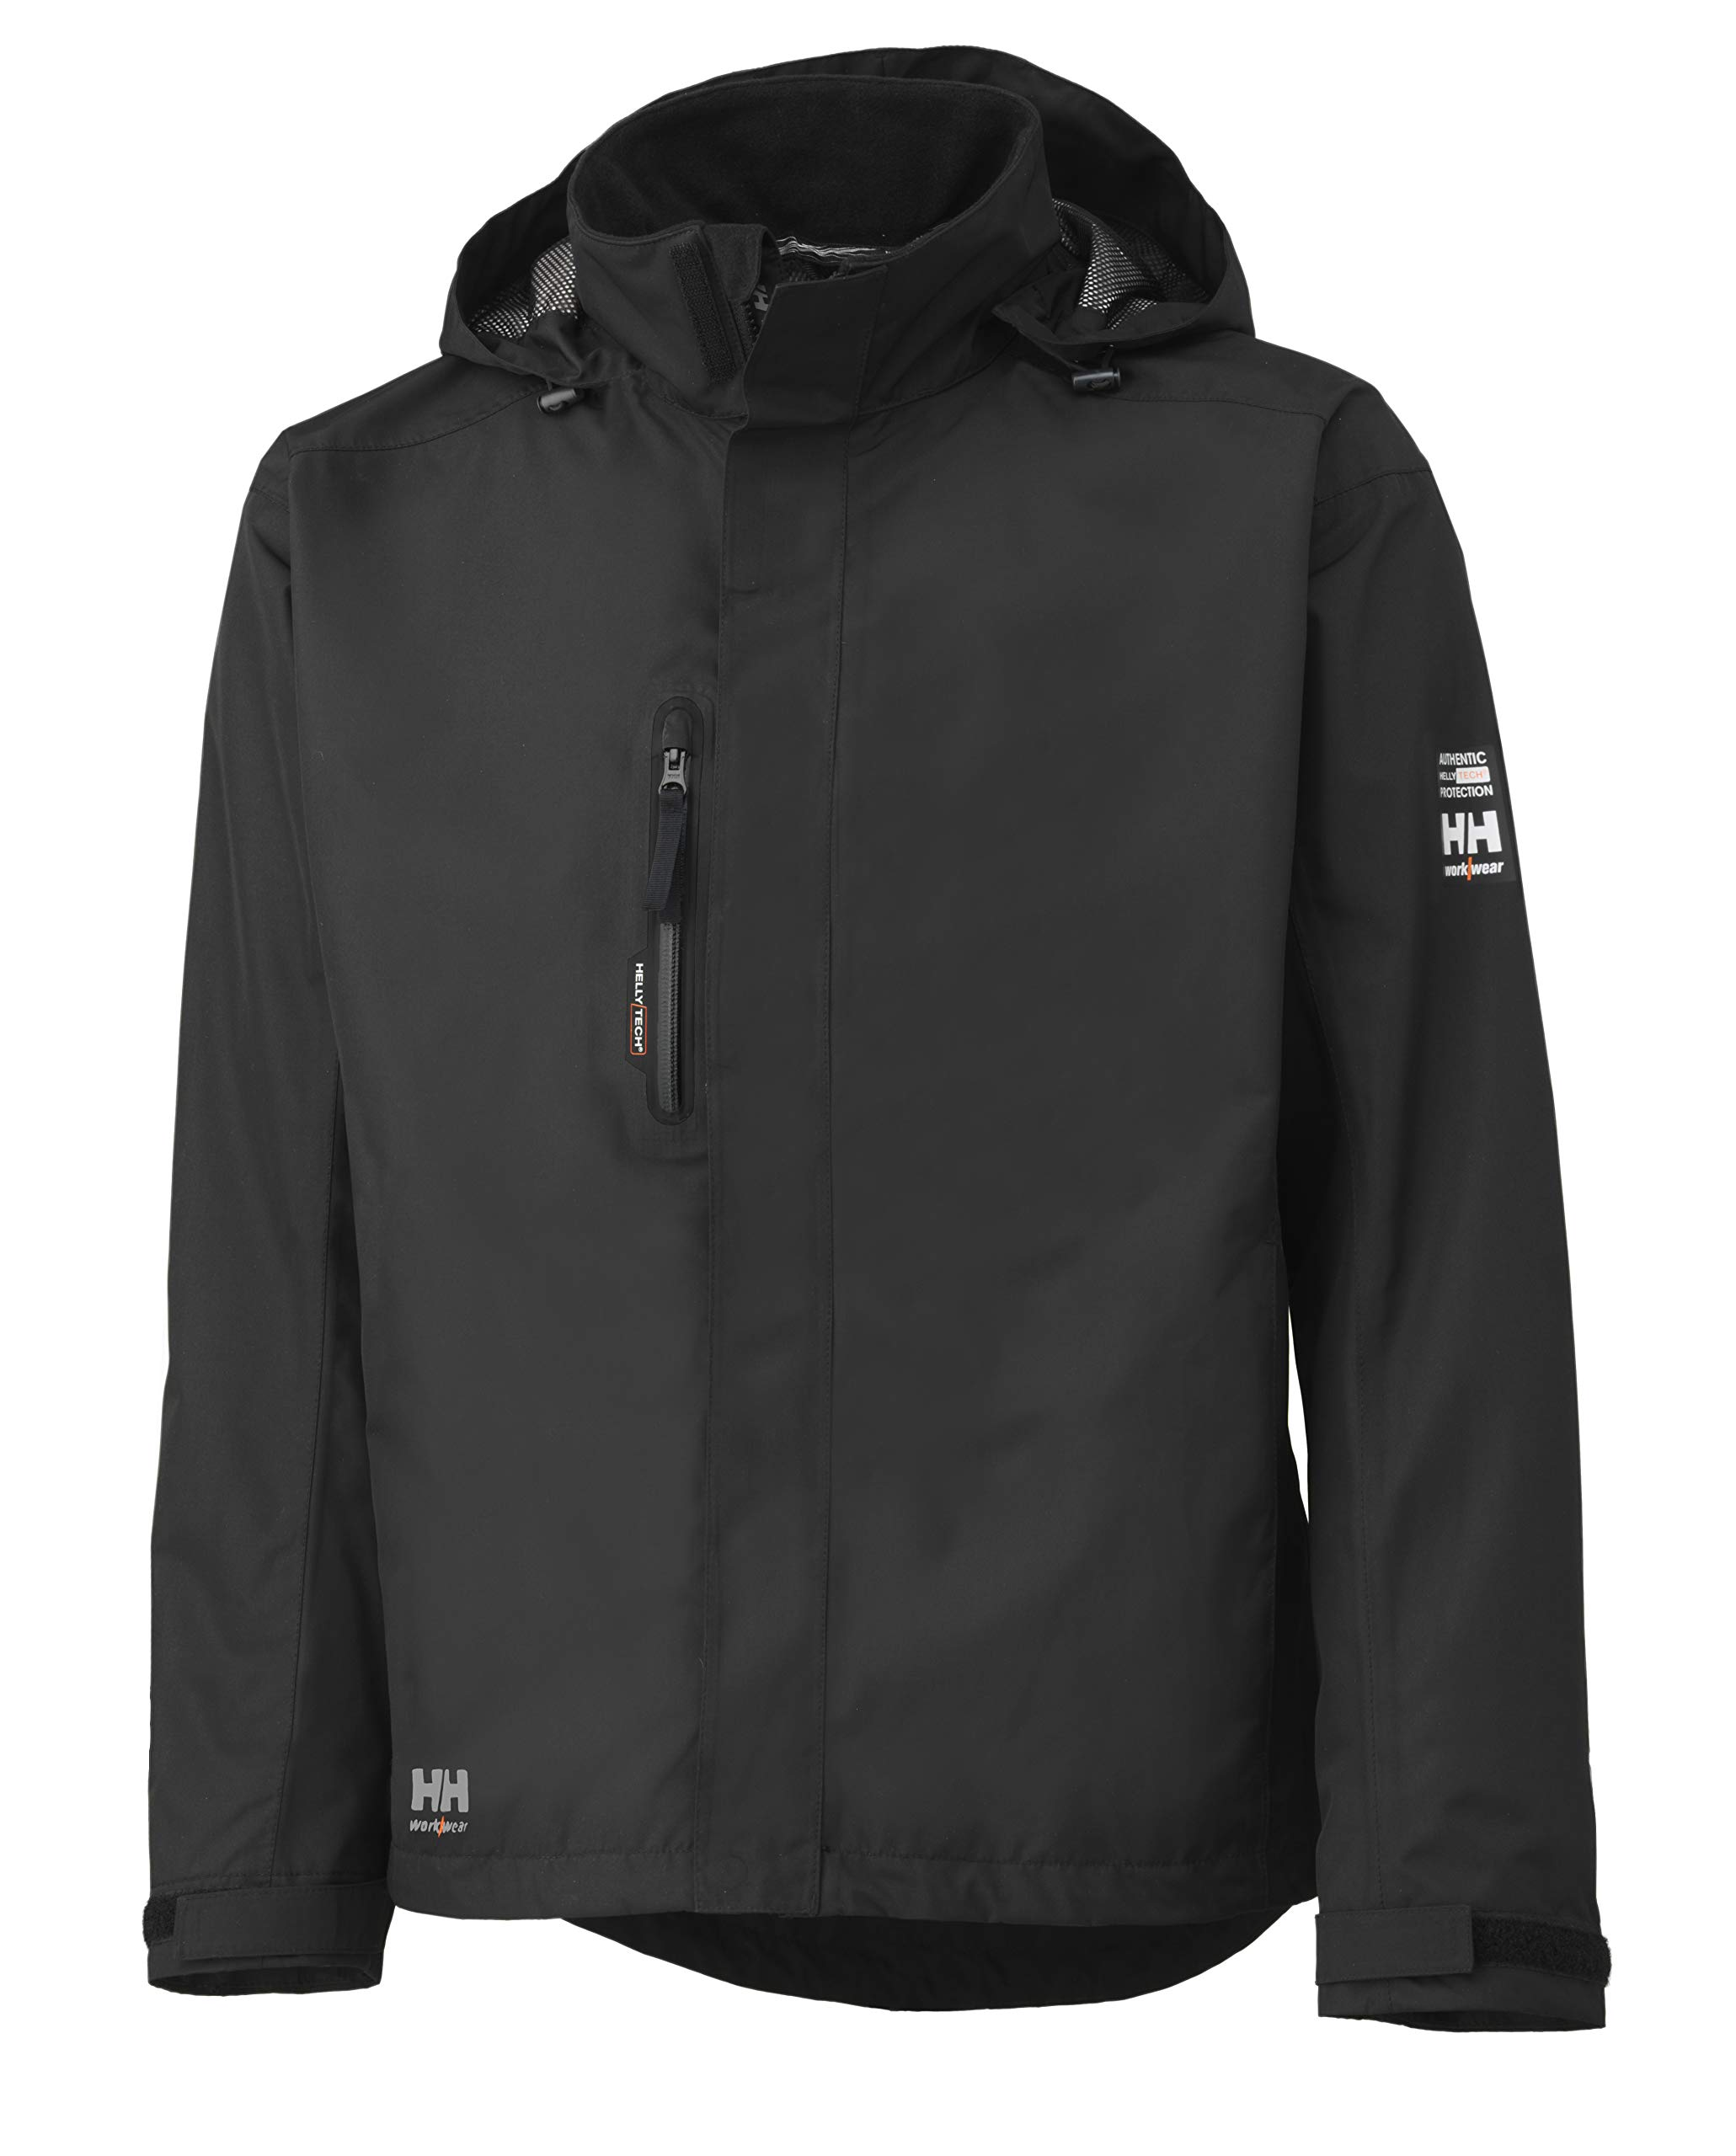 Helly Hansen Work Wear Men's Haag Jacket, Black, 3X-Large